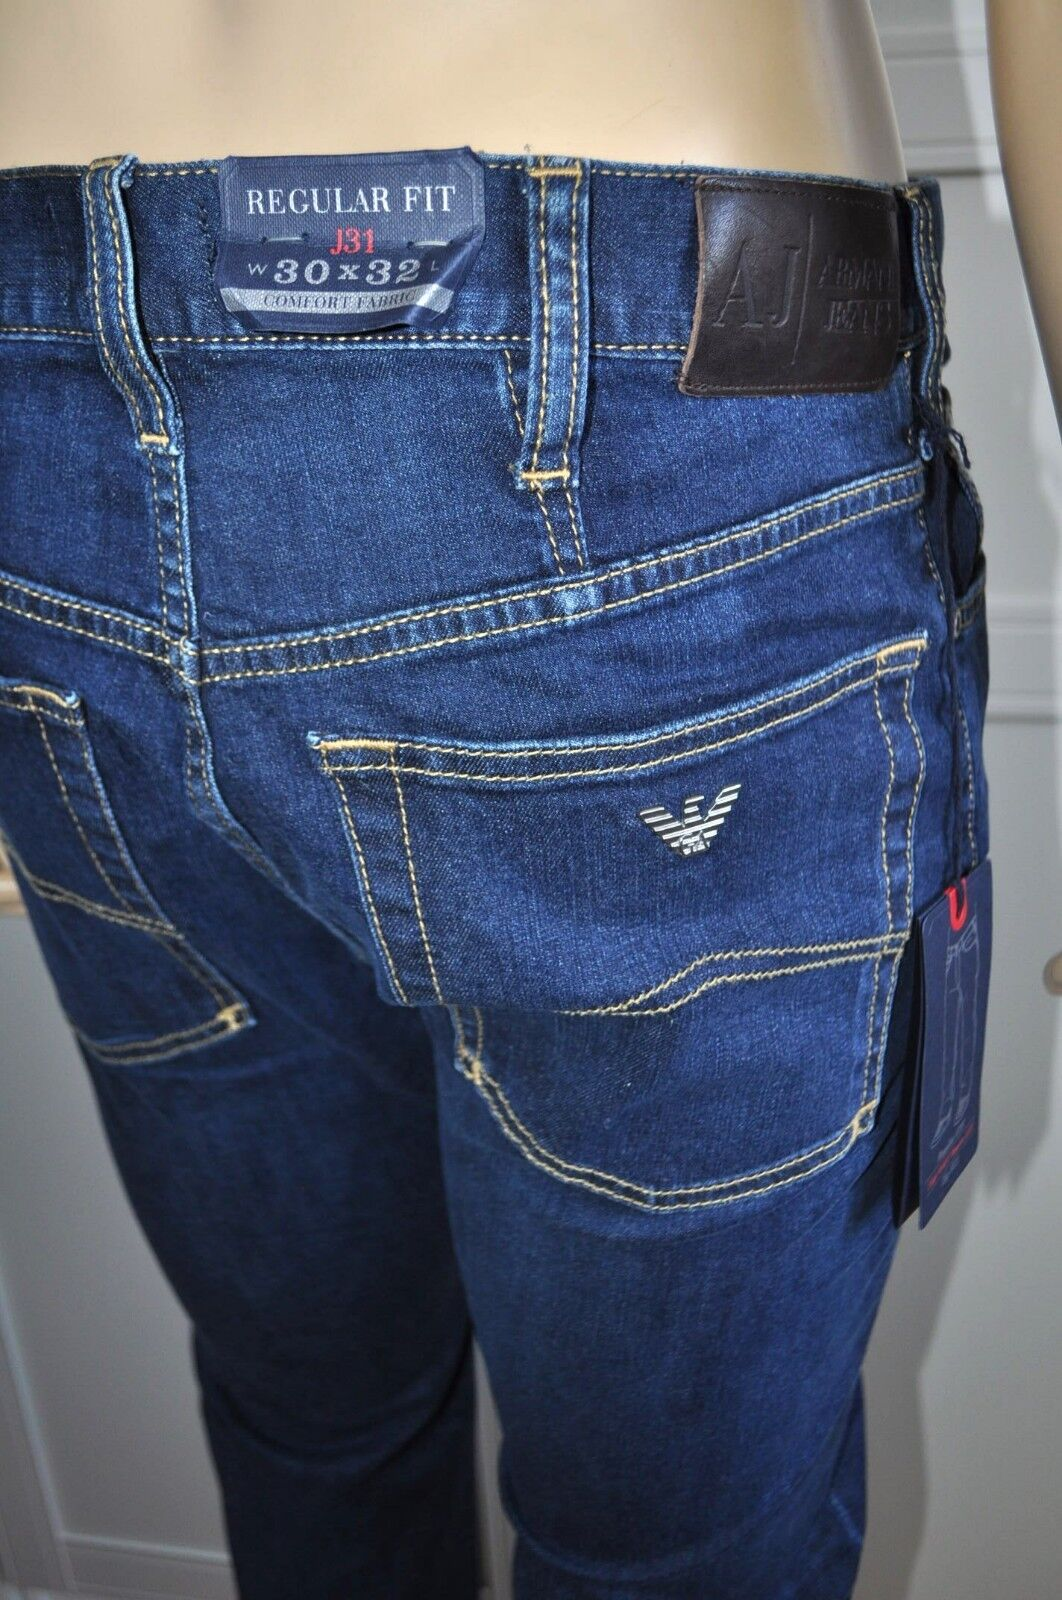 NEW ARMANI JEANS J31 COMFORT FABRIC REGULAR FIT REGULAR LEG MEN`S JEANS Sz 30x32